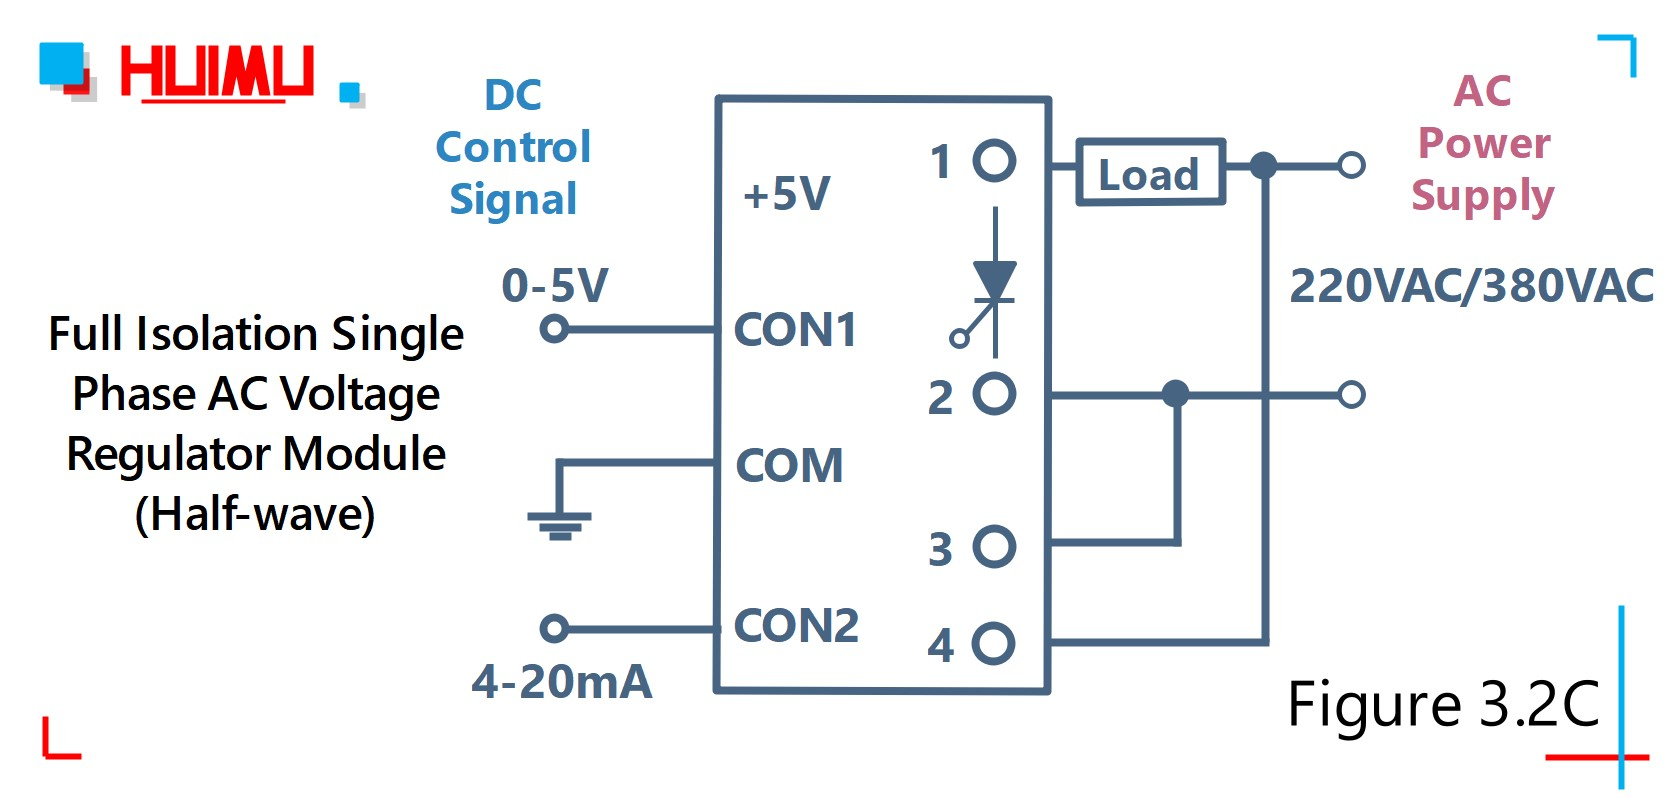 How to wire MGR mager MGR-DTY2240EG full isolation single phase AC voltage regulator? Half-wave type AC voltage regulator module circuit diagram, rated working voltage is 220VAC or 380VAC, output waveform is half wave. More detail via www.@huimultd.com